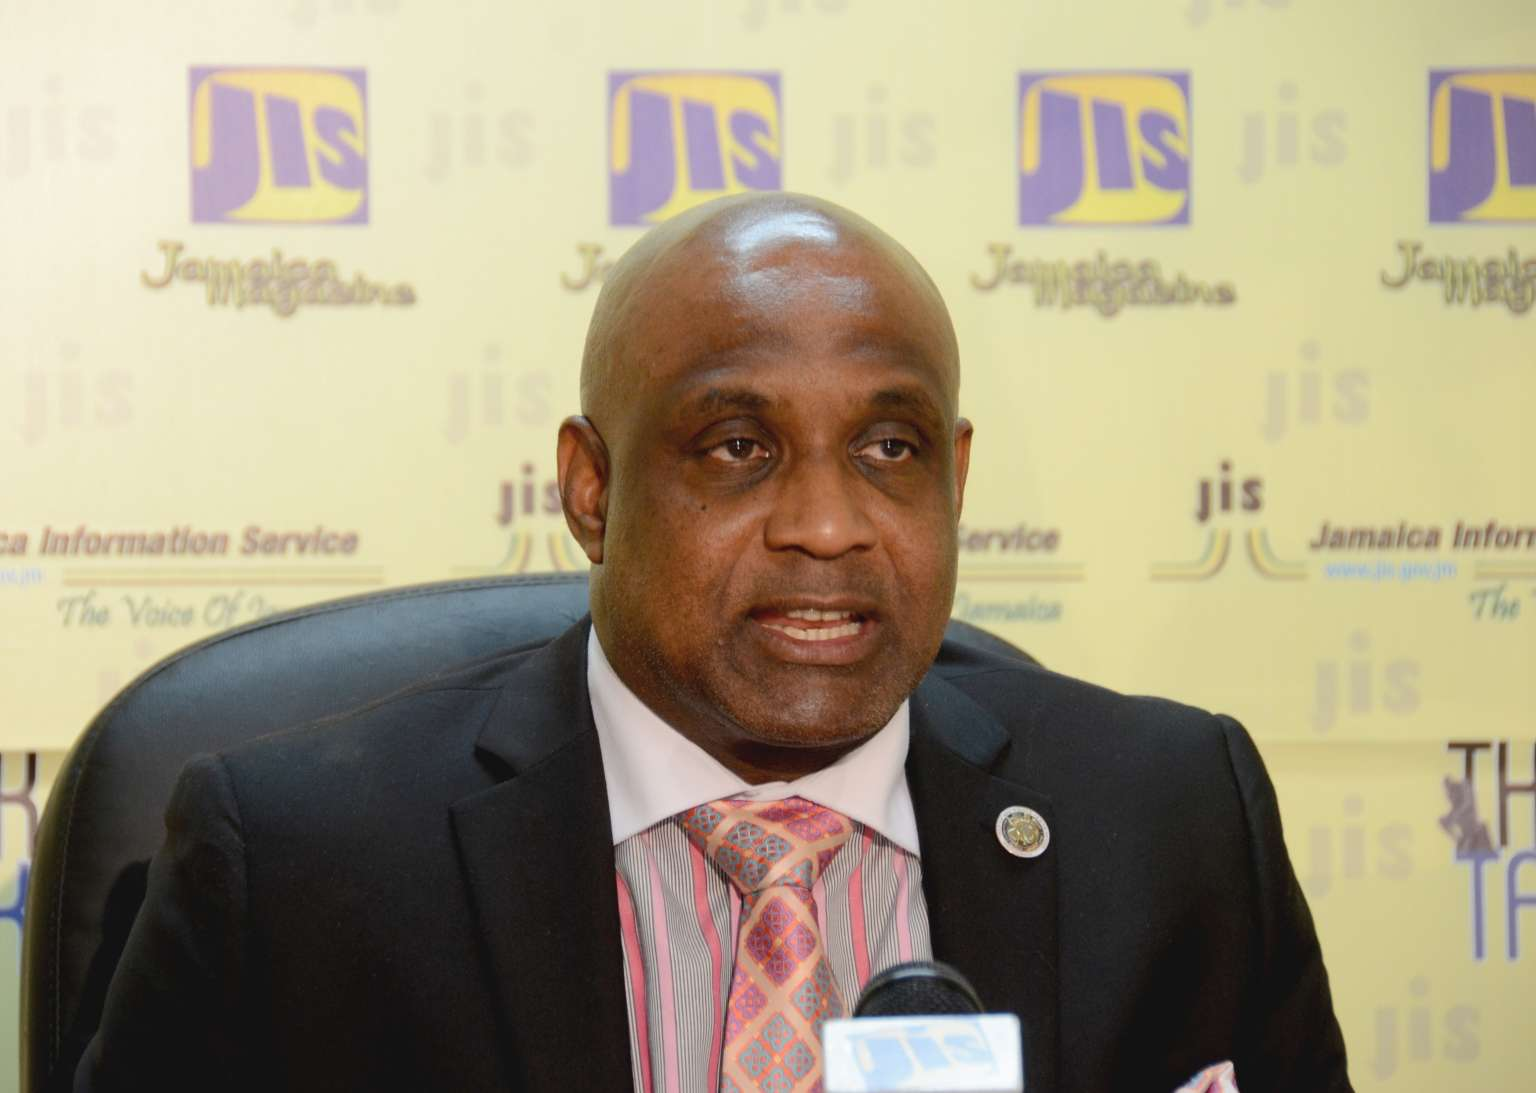 Auditor General Raises Concerns Over $US12,700 Reimbursement To CMU President